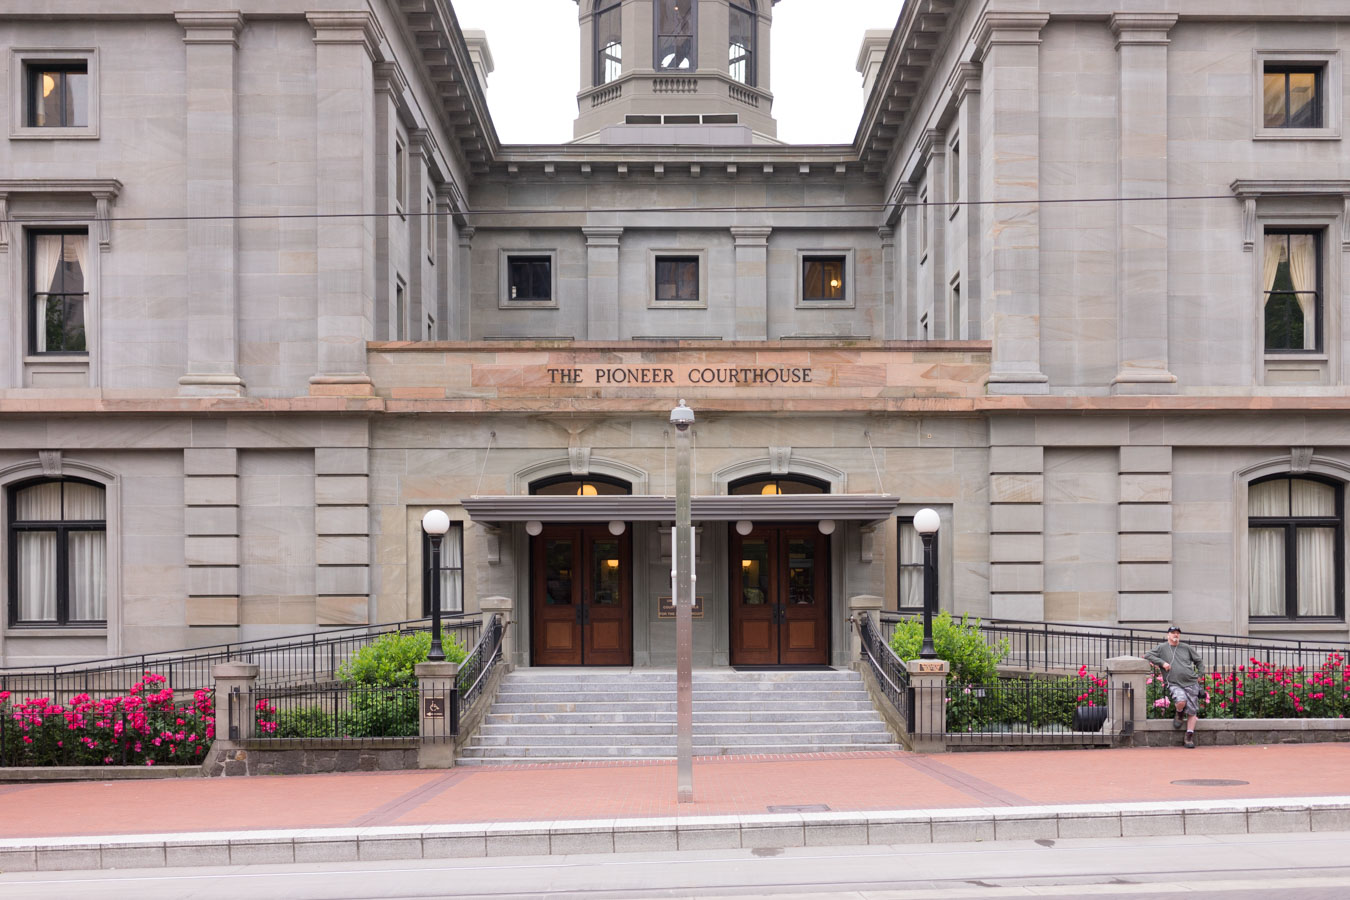 The Pioneer Courthouse and the adjunctive square are the common place for locals.